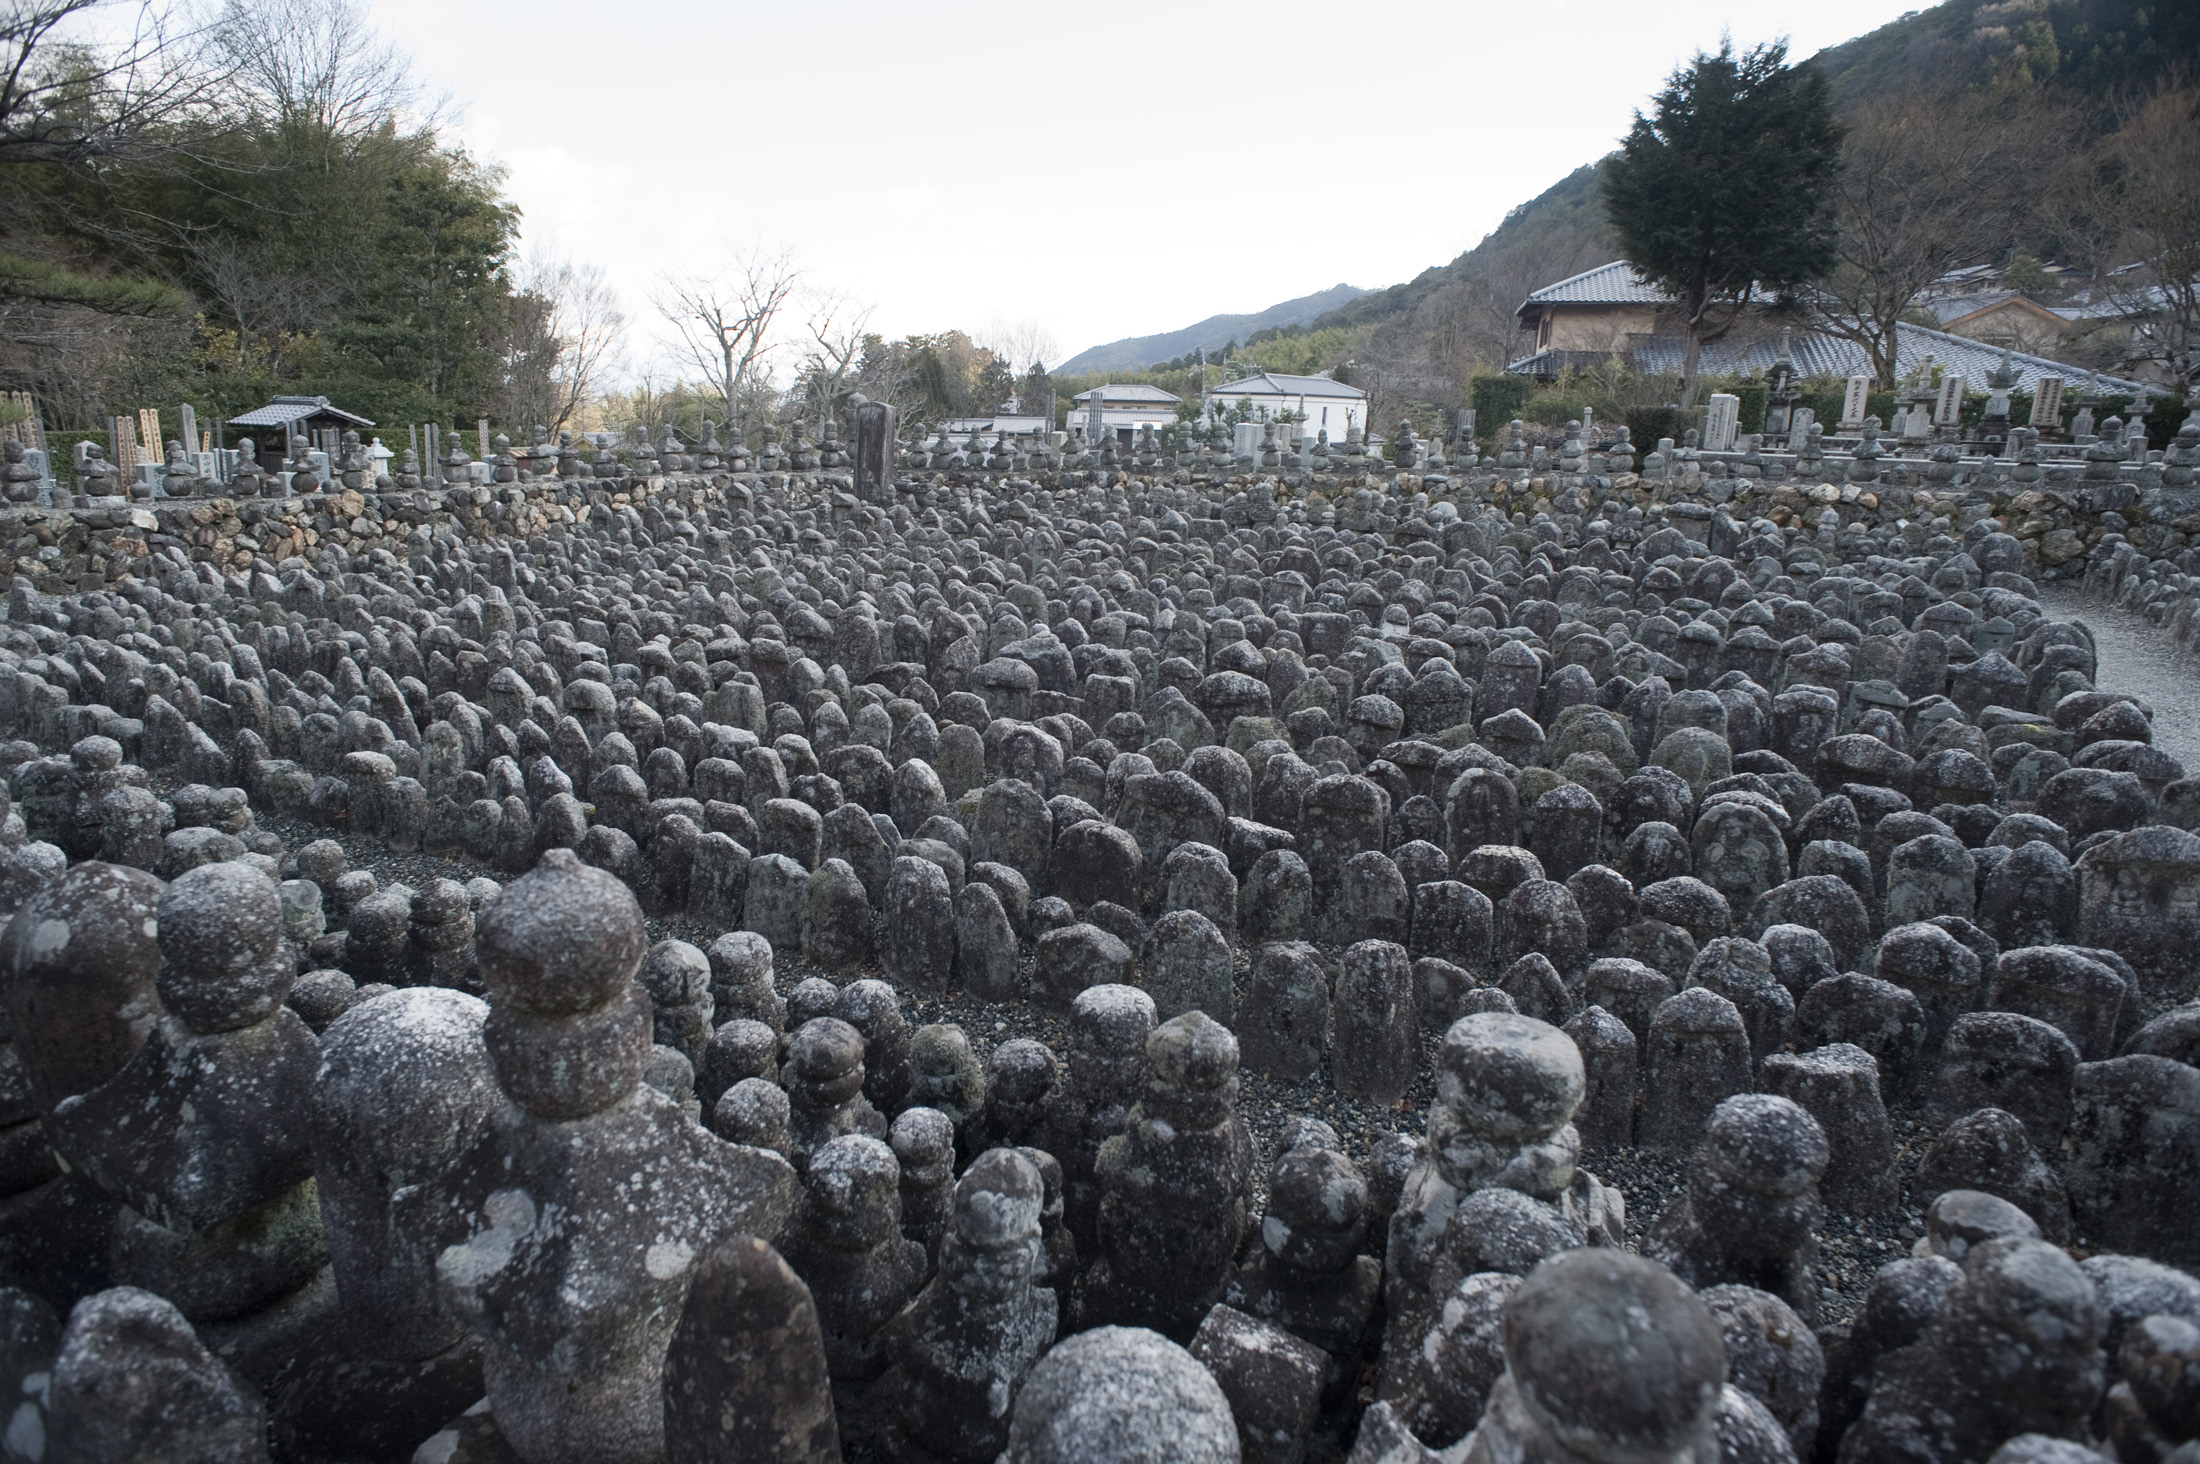 Buddhist statues, each representing an unknown or forgotten person, Adashino Nenbutsu-ji